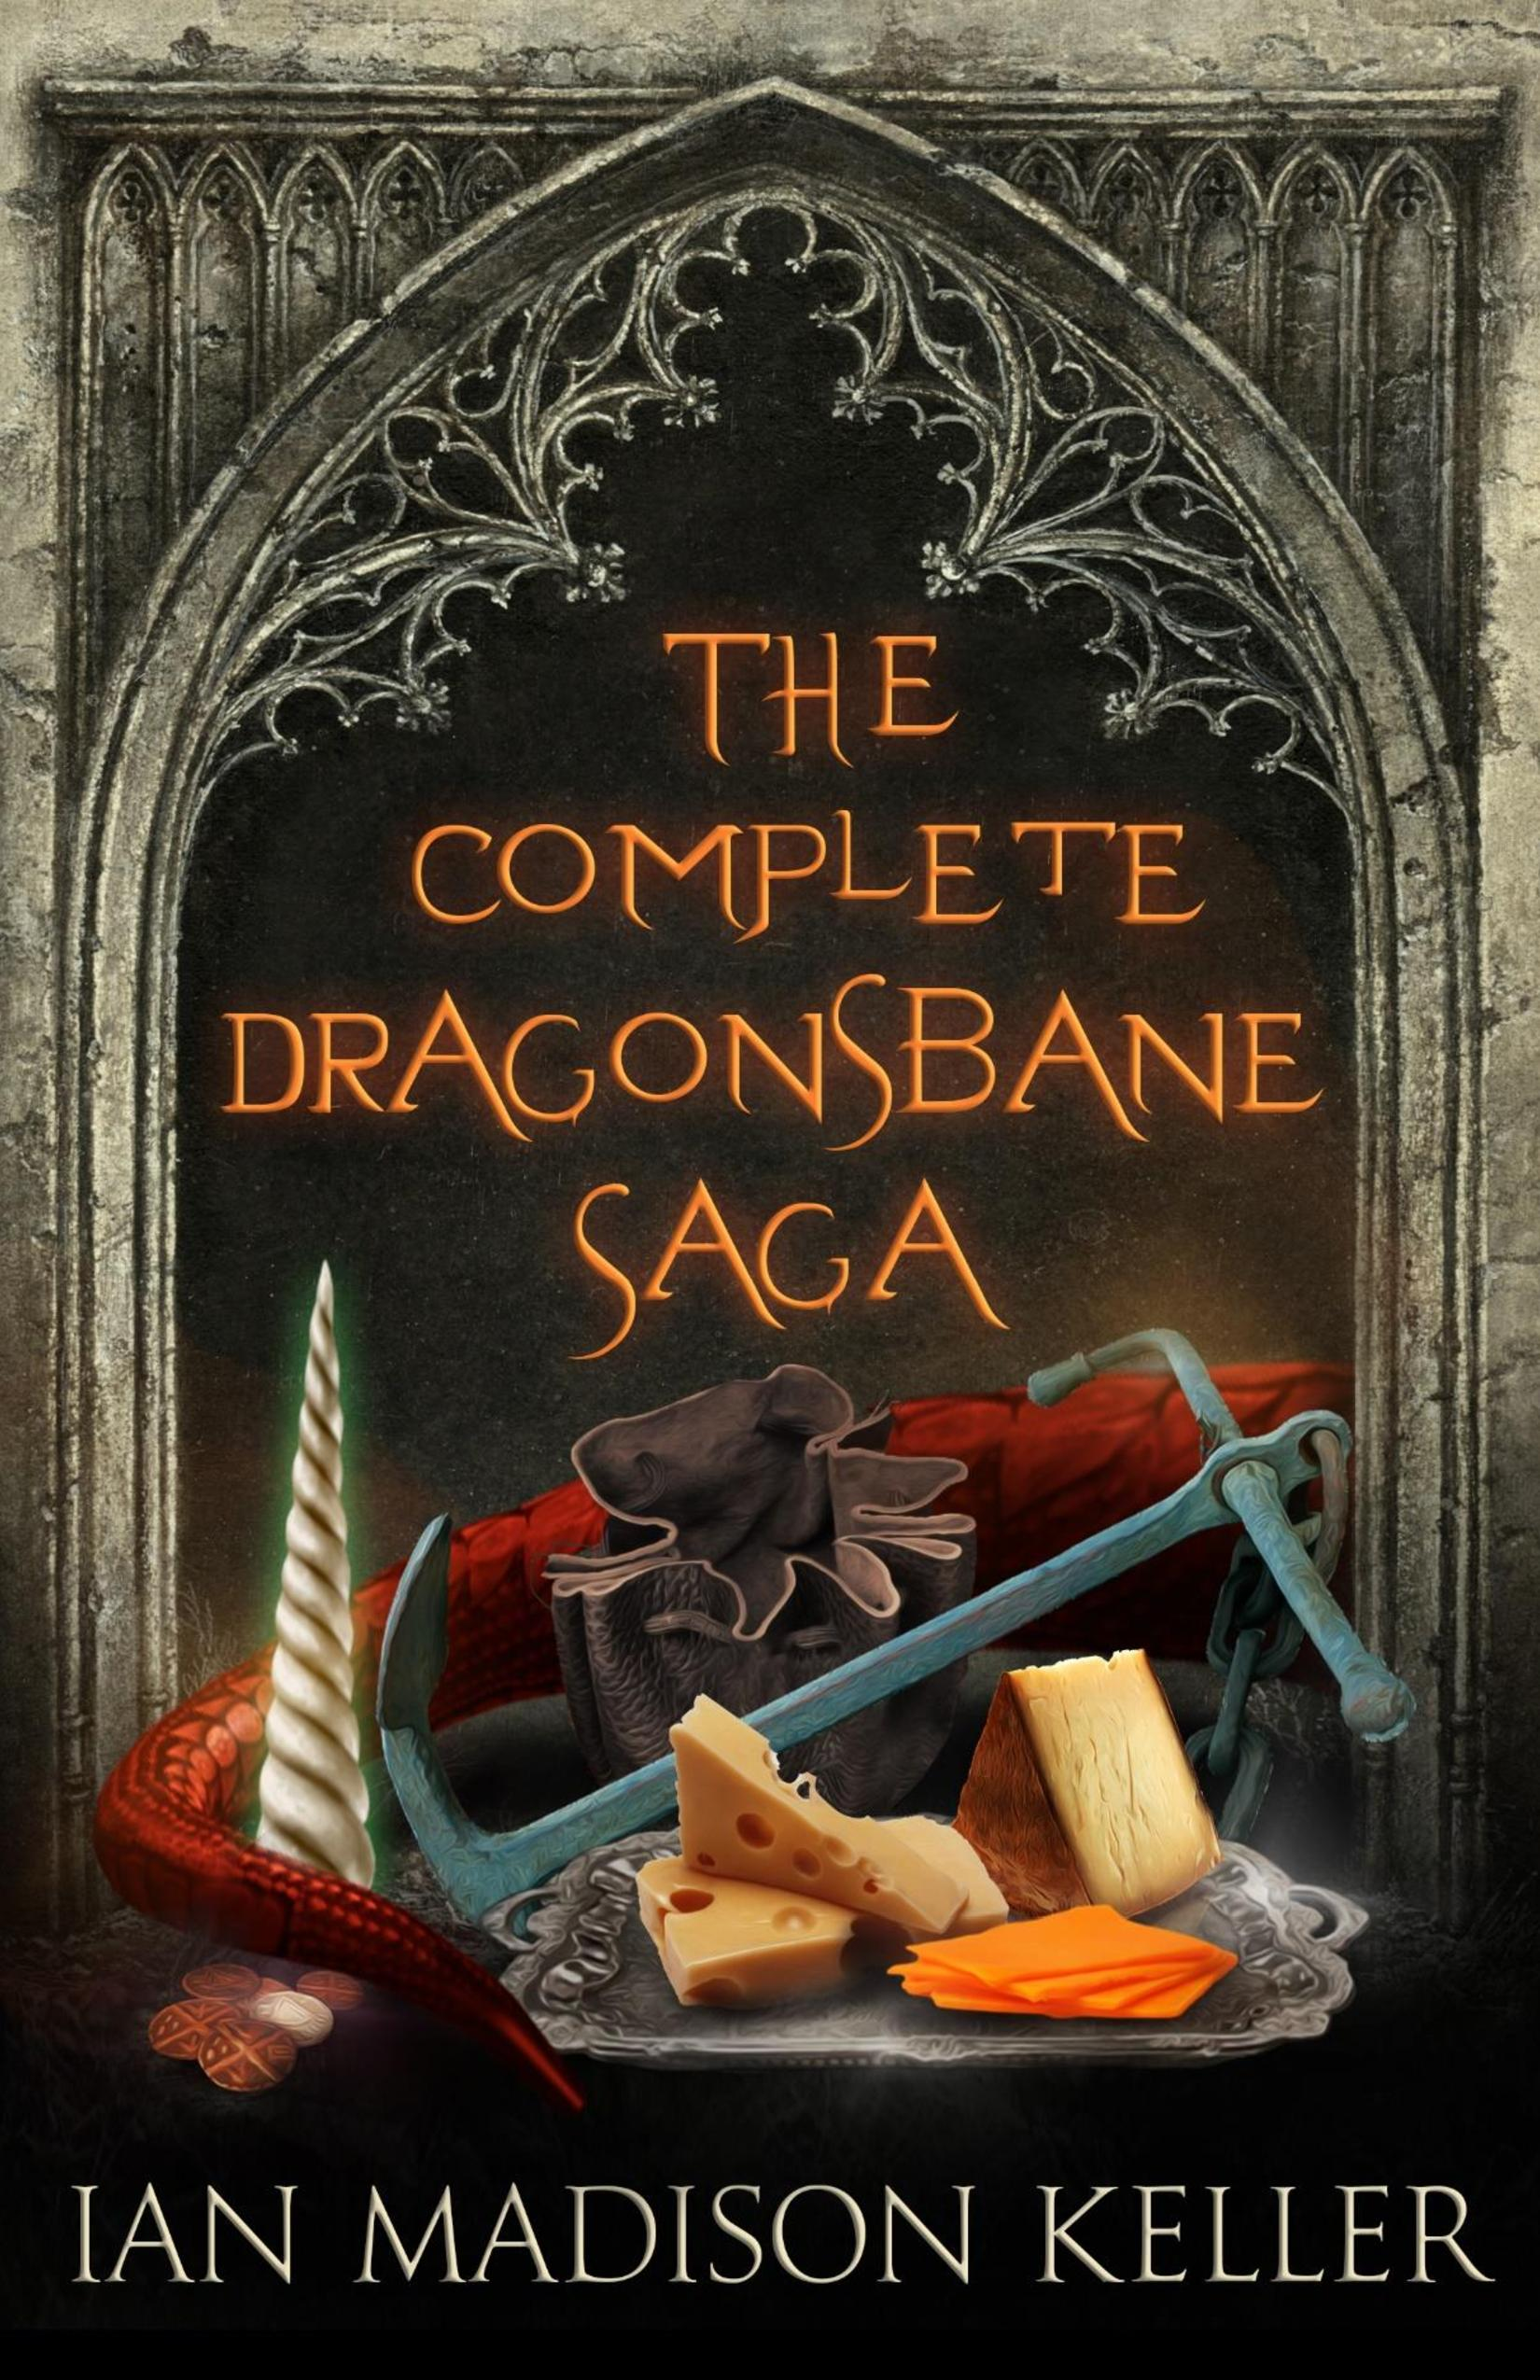 The Complete Dragonsbane Saga